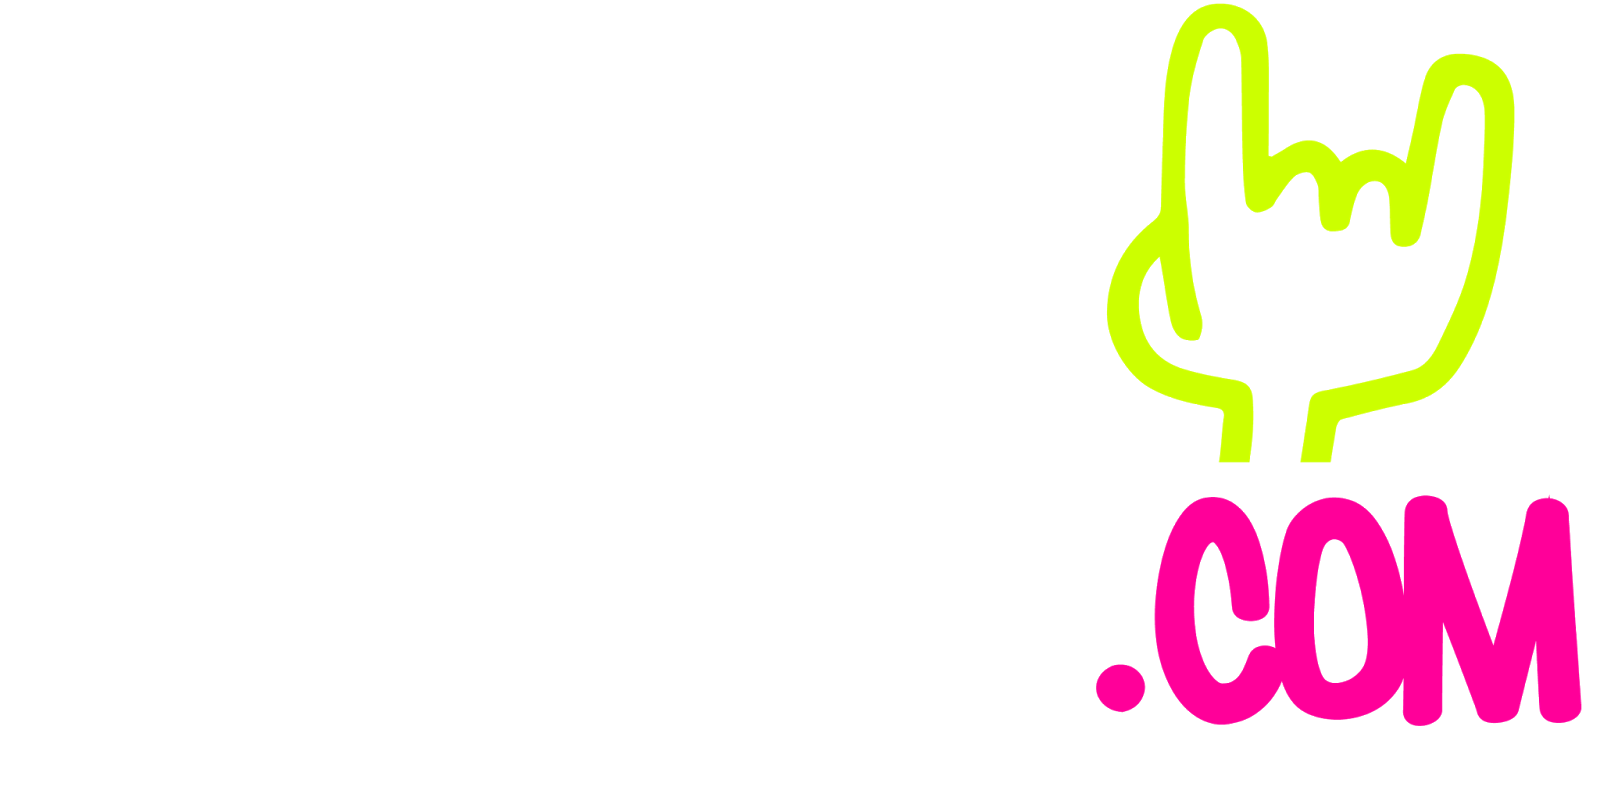 traveljurnal.com